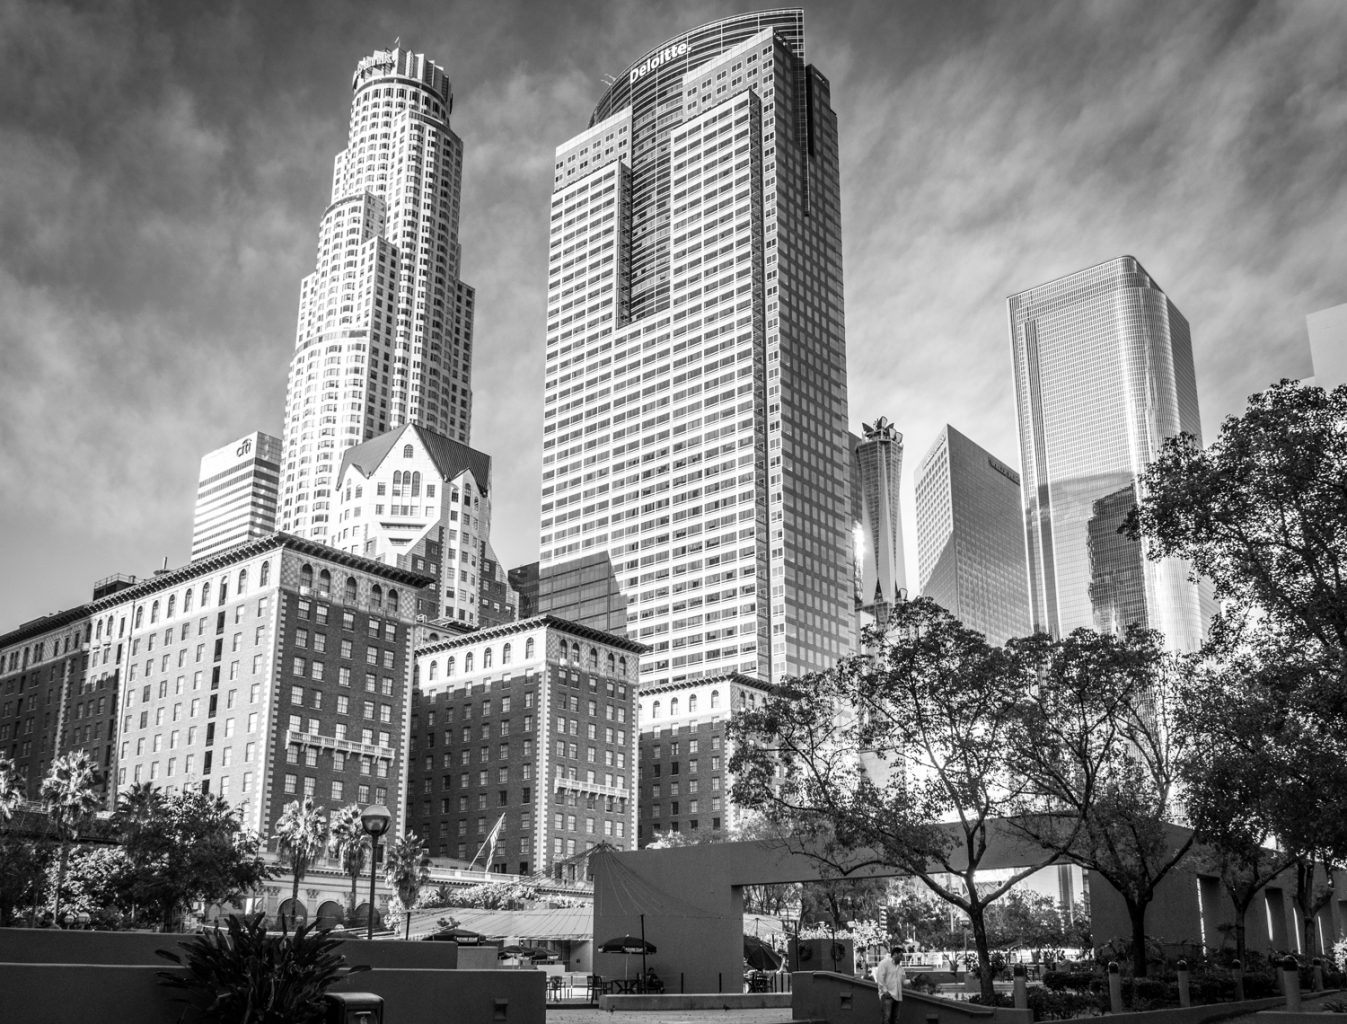 A photographer's DIY walking tour of downtown LA - Pershing Square